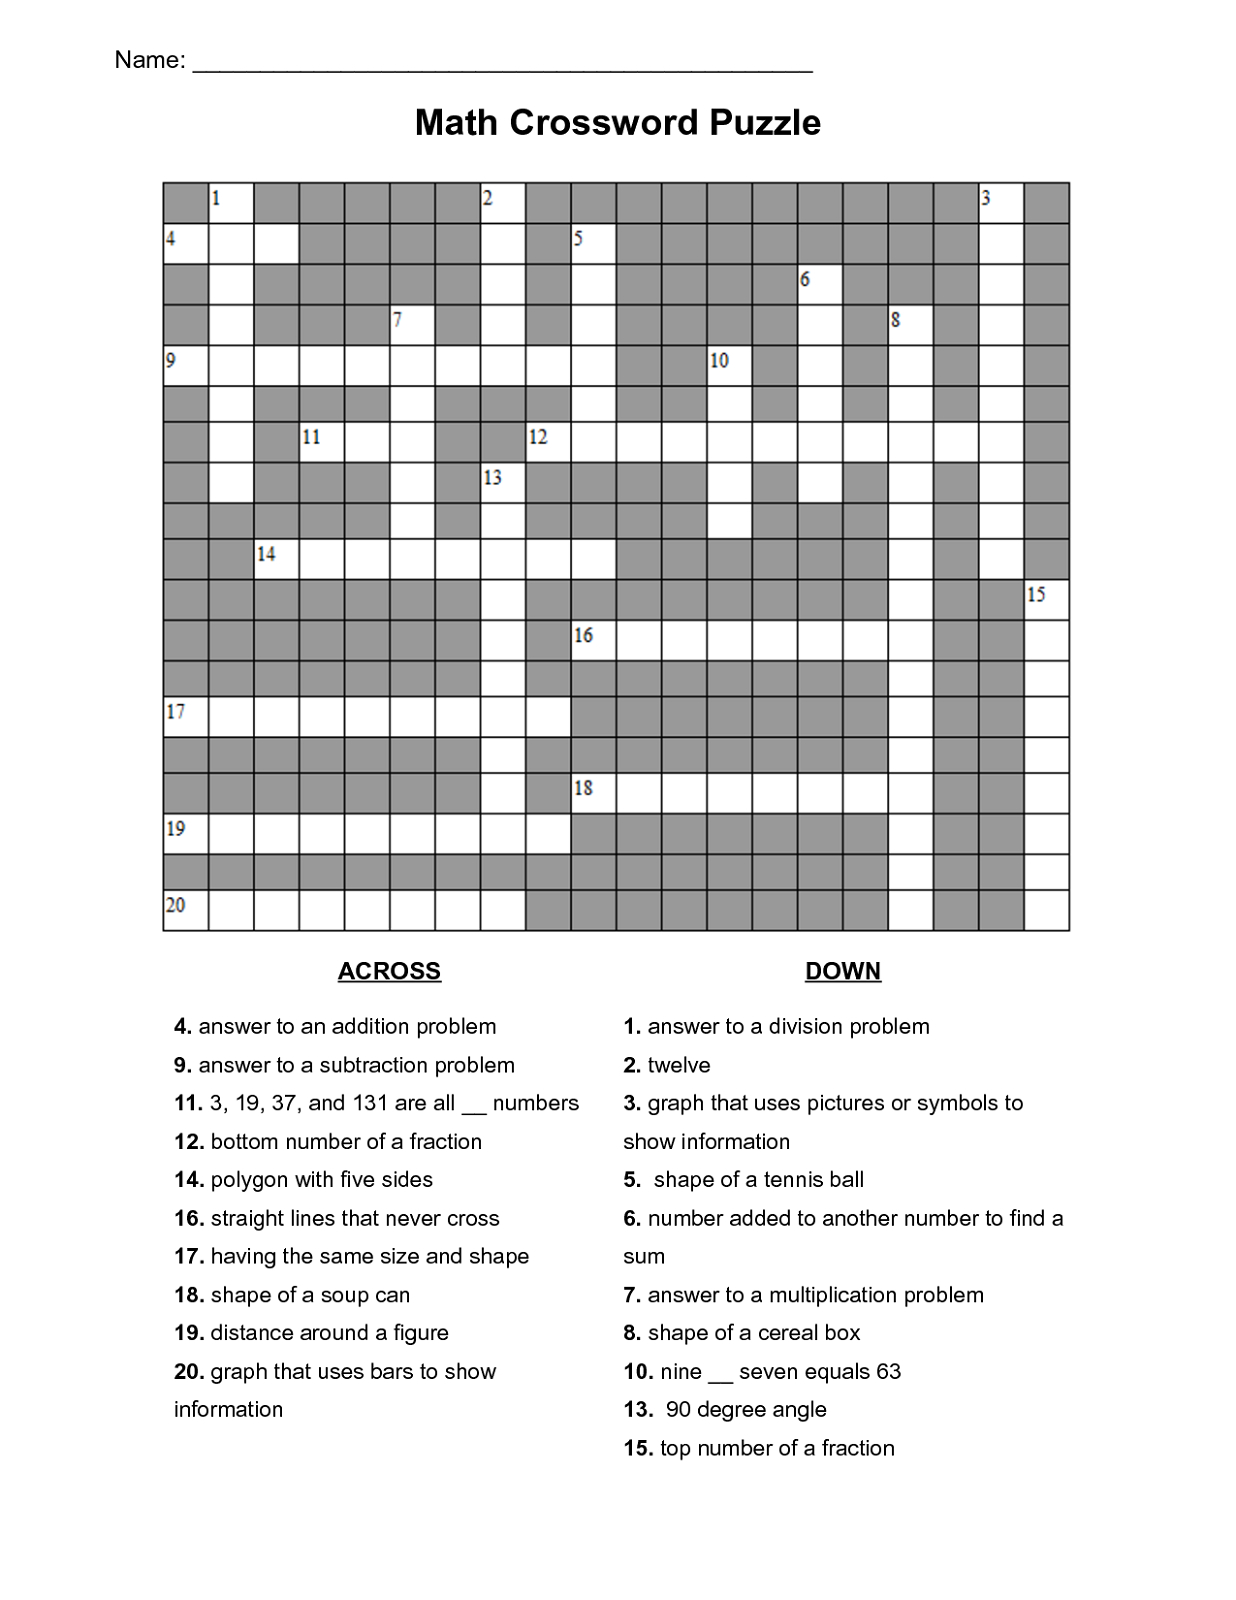 Crossword Puzzles For Nokia Download - Printable Marathi Crossword Puzzles Download